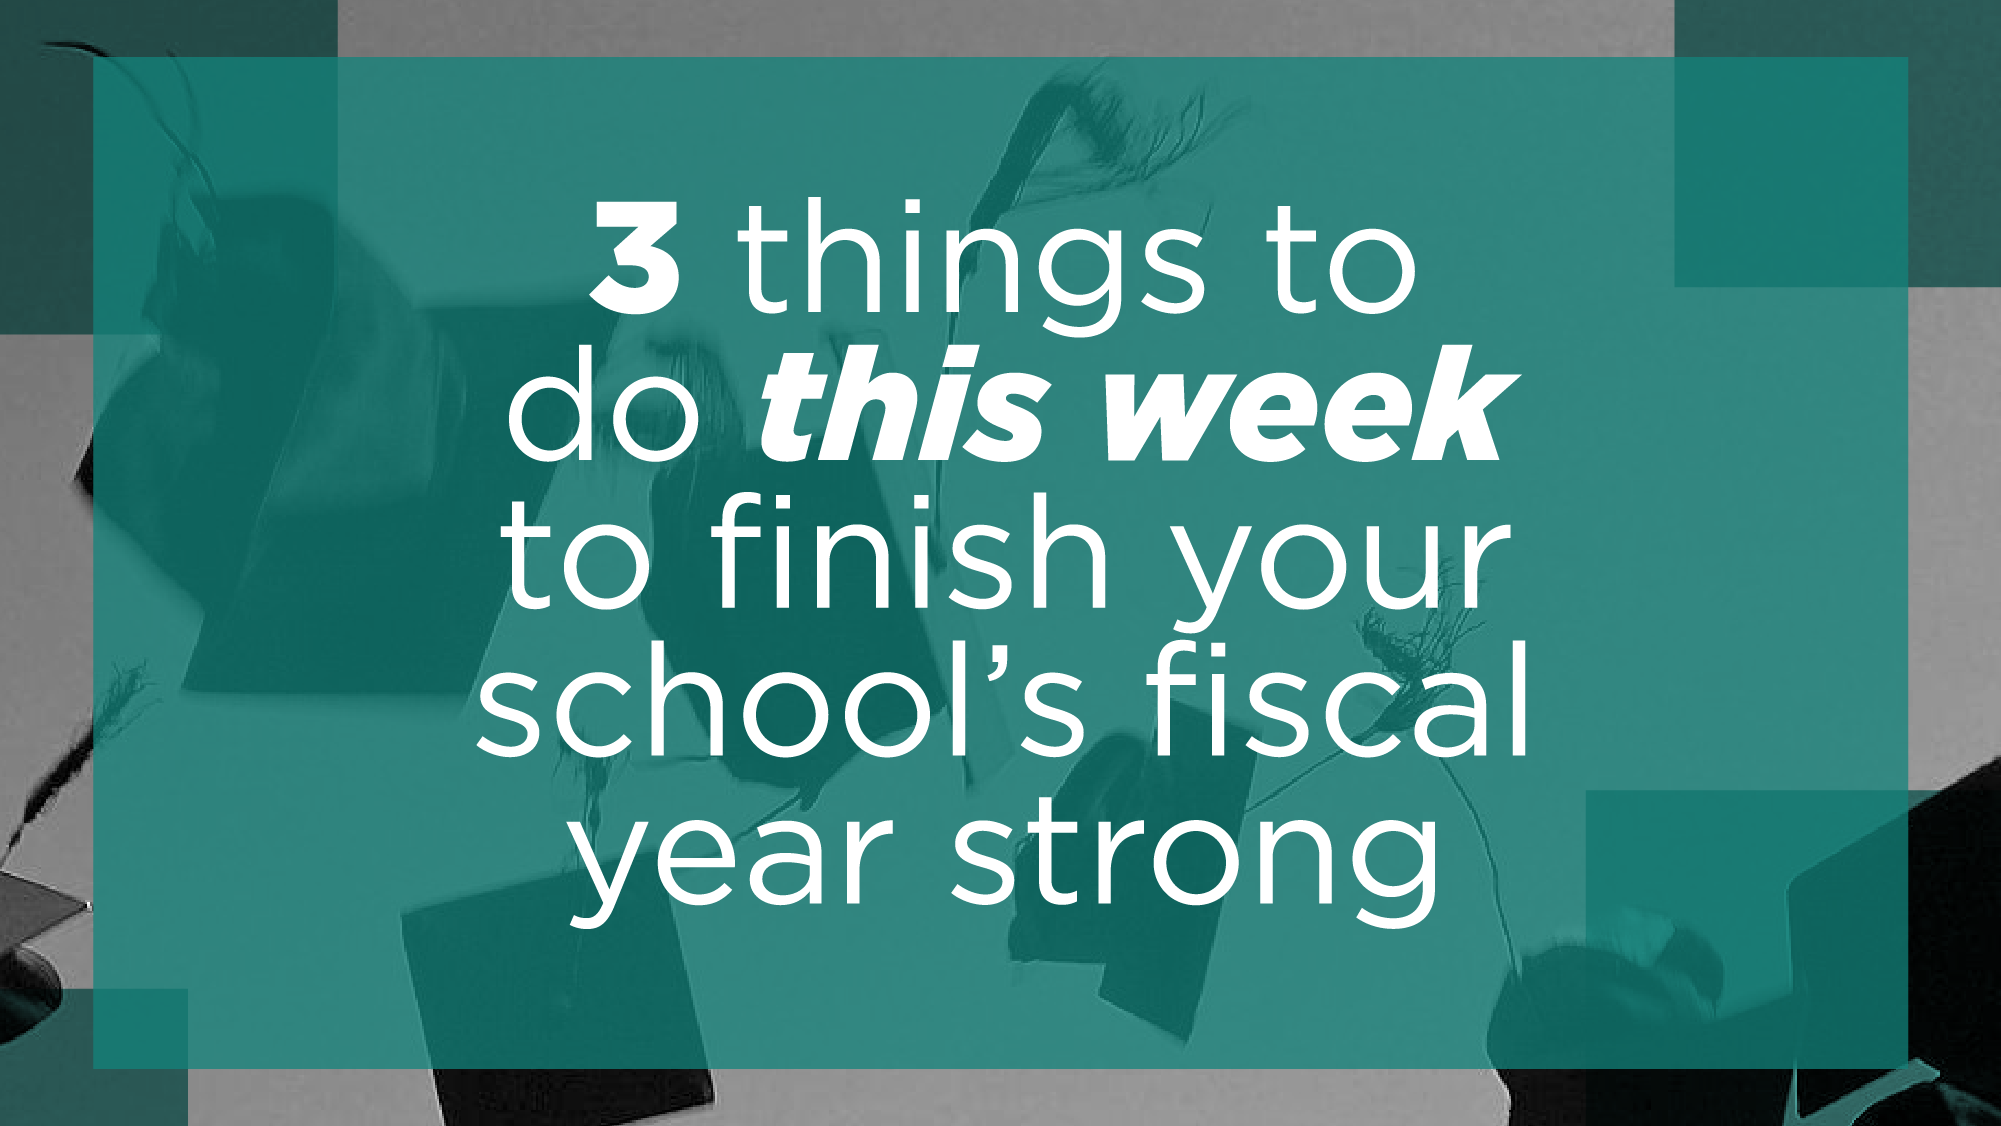 3 Things To Do This Week To Finish Your K-12 School's Fiscal Year Strong